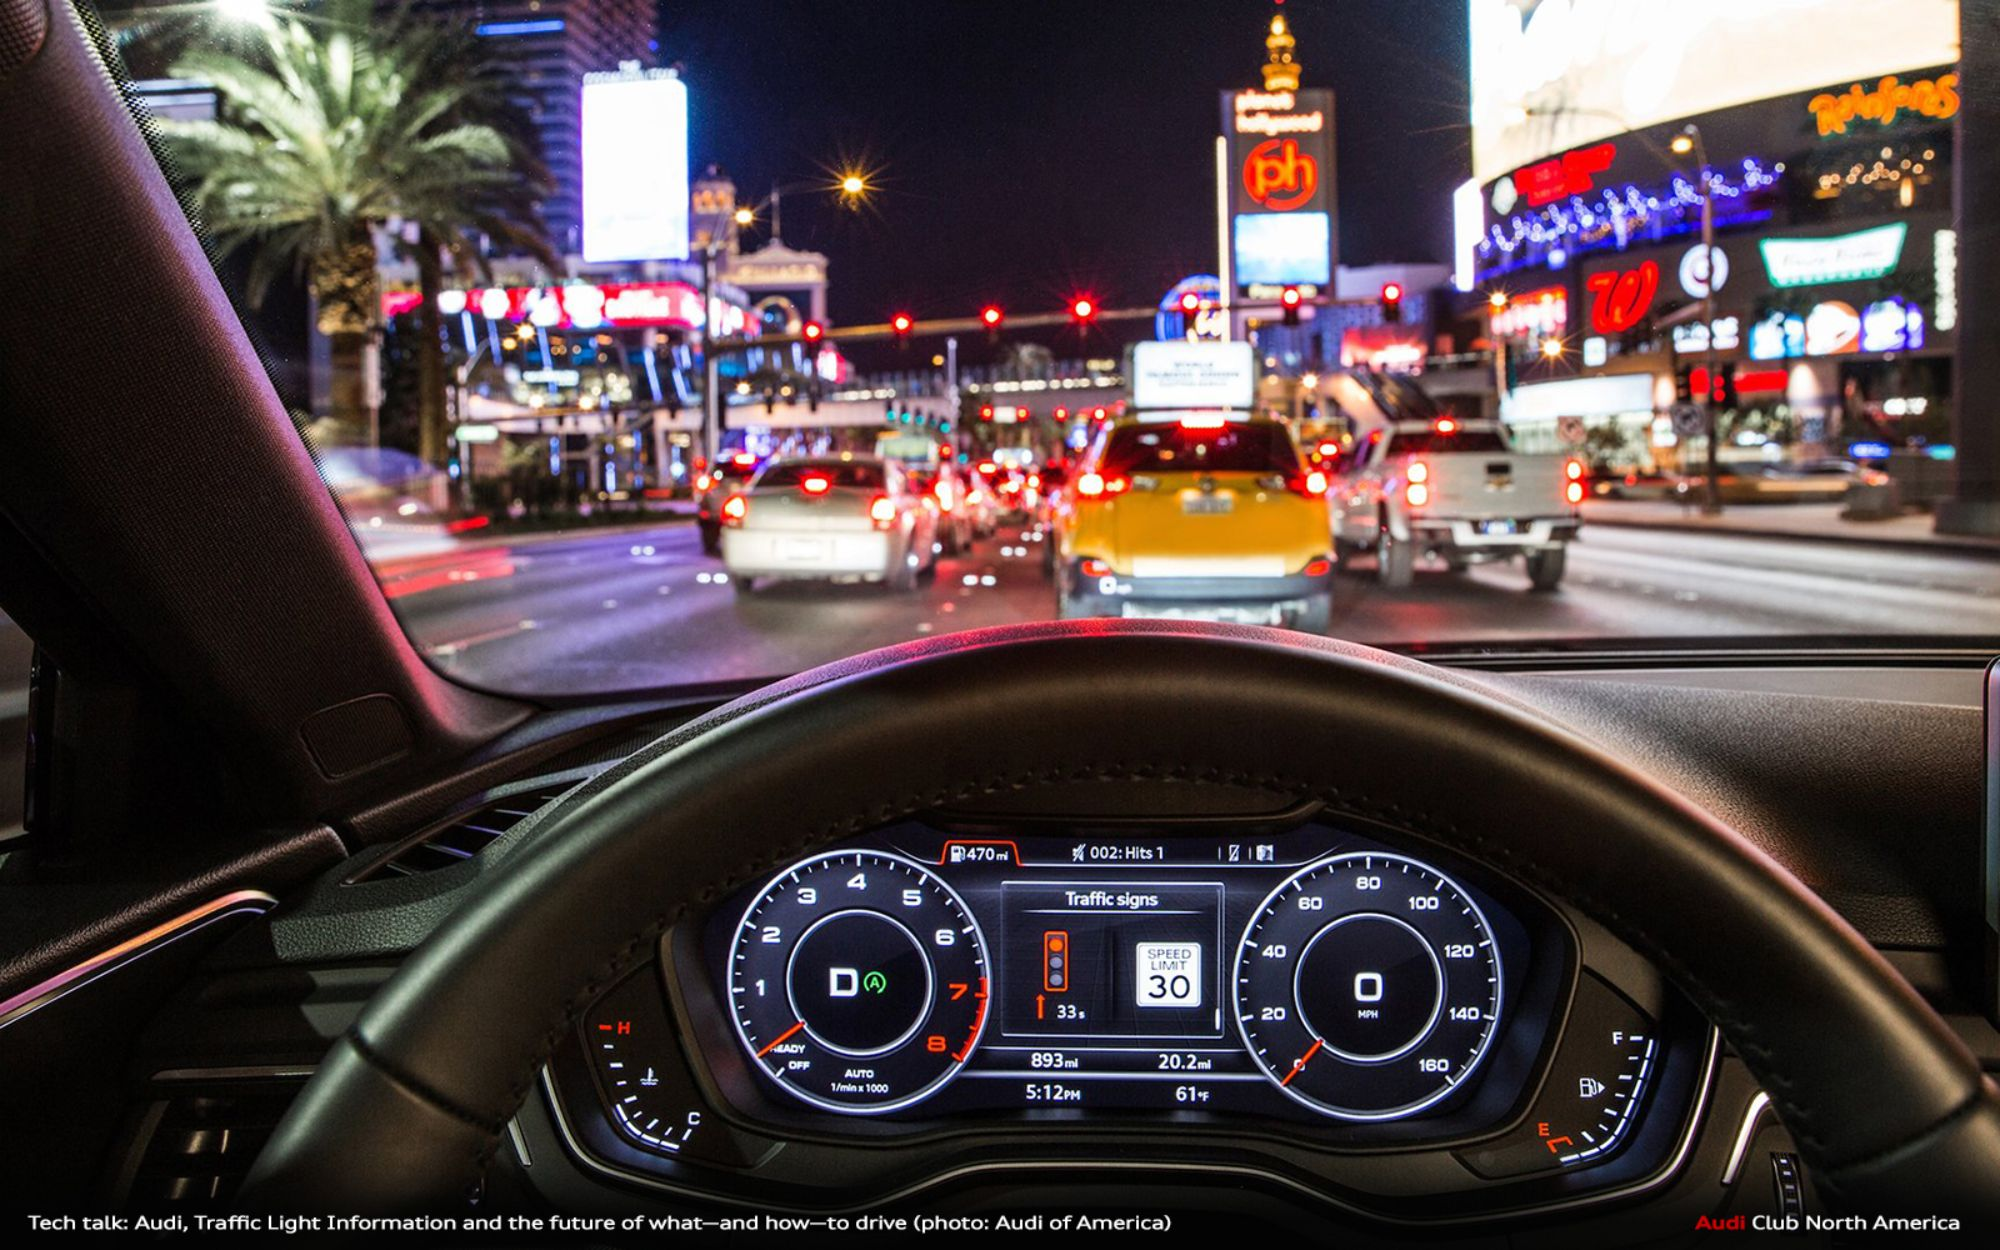 Tech Talk: Audi, Traffic Light Information and the Future of What—and How—to Drive